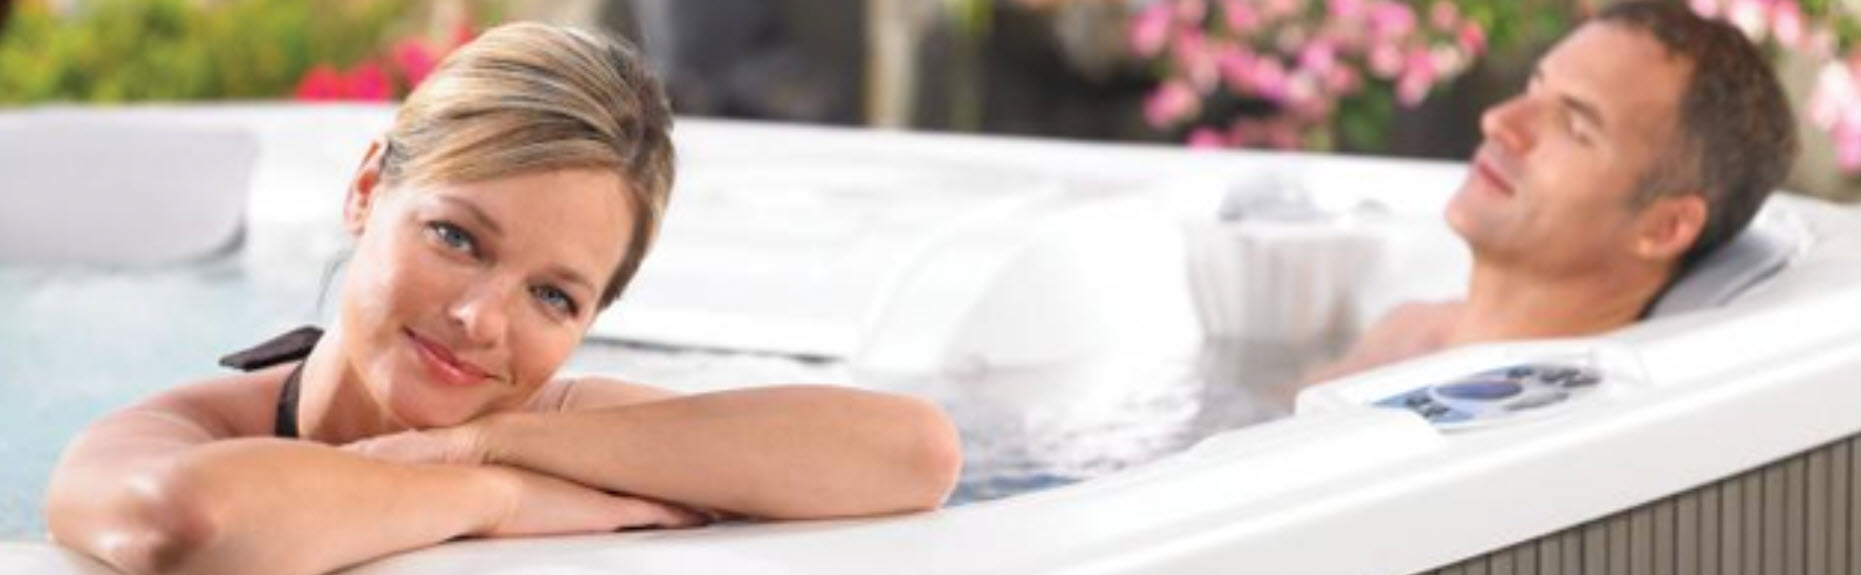 Promote a Healthy Lifestyle with a Backyard Spa, Hot Tubs Maryland Heights